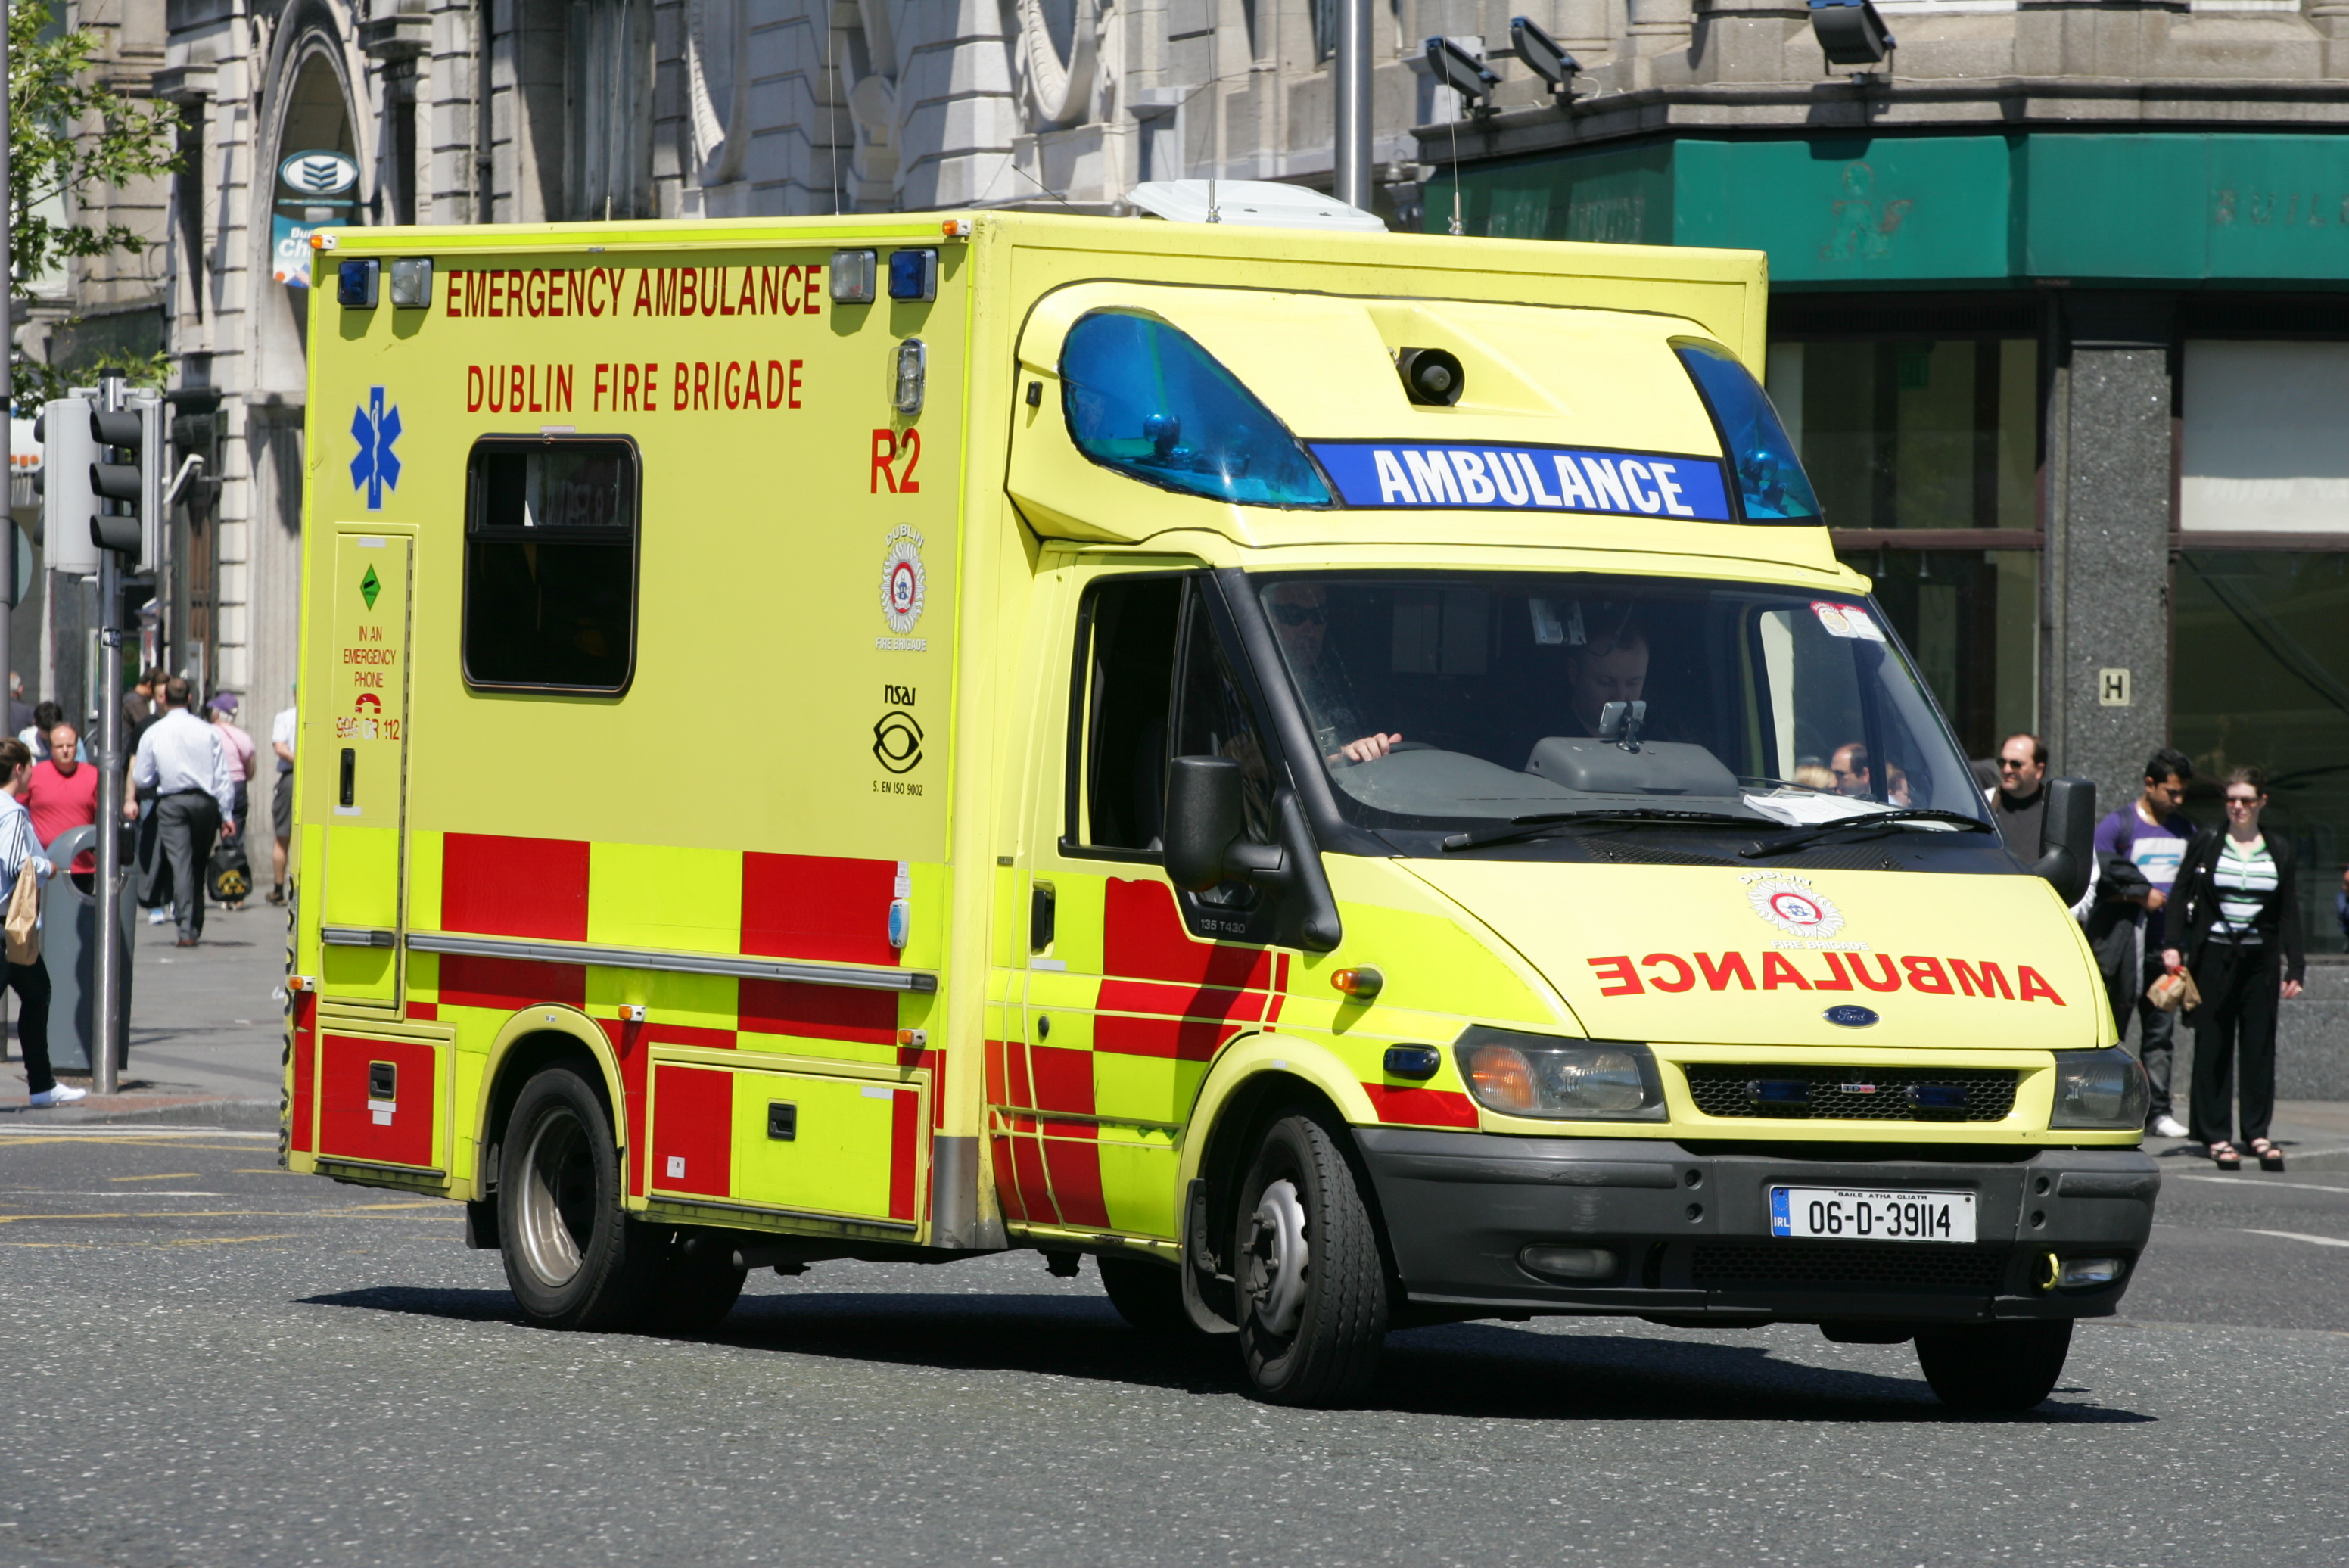 New Ambulances For Dublin Fire Brigade Fitted With Solar Panels And Re-Generative Braking